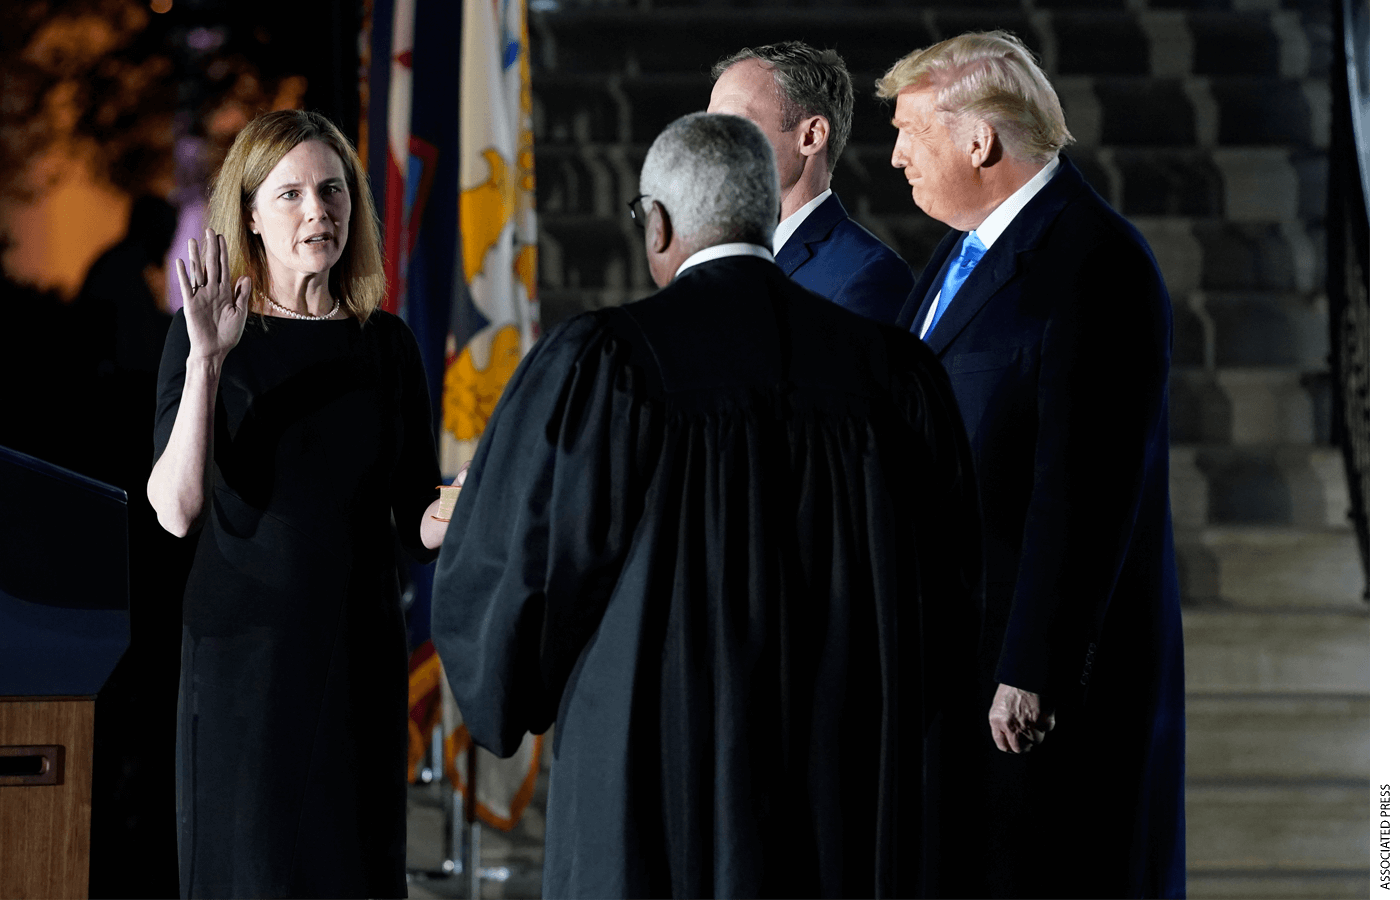 President Donald Trump watches as Supreme Court Justice Clarence Thomas administers the Constitutional Oath to Amy Coney Barrett on the South Lawn of the White House in Washington, Monday, Oct. 26, 2020, after Barrett was confirmed by the Senate earlier in the evening.